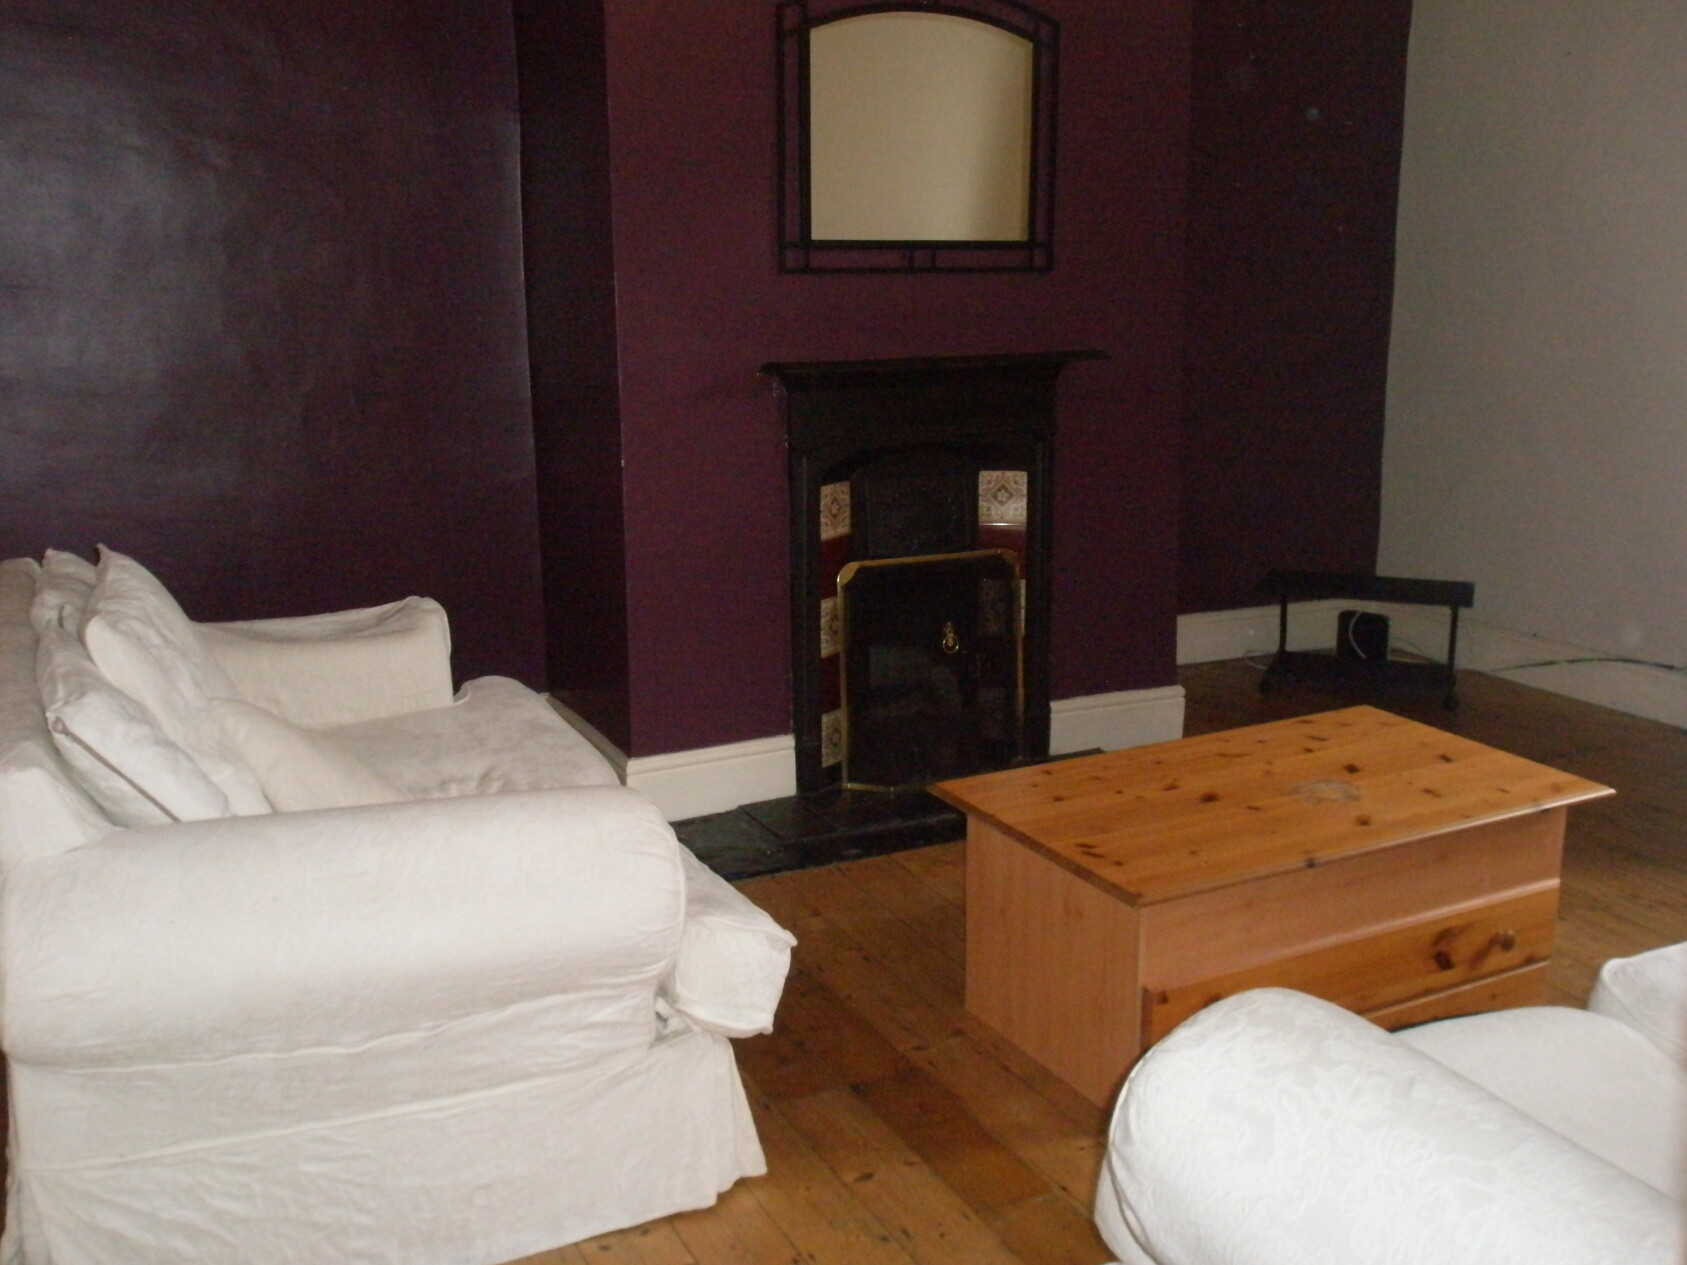 2 bedroom student apartment in Jesmond, Newcastle